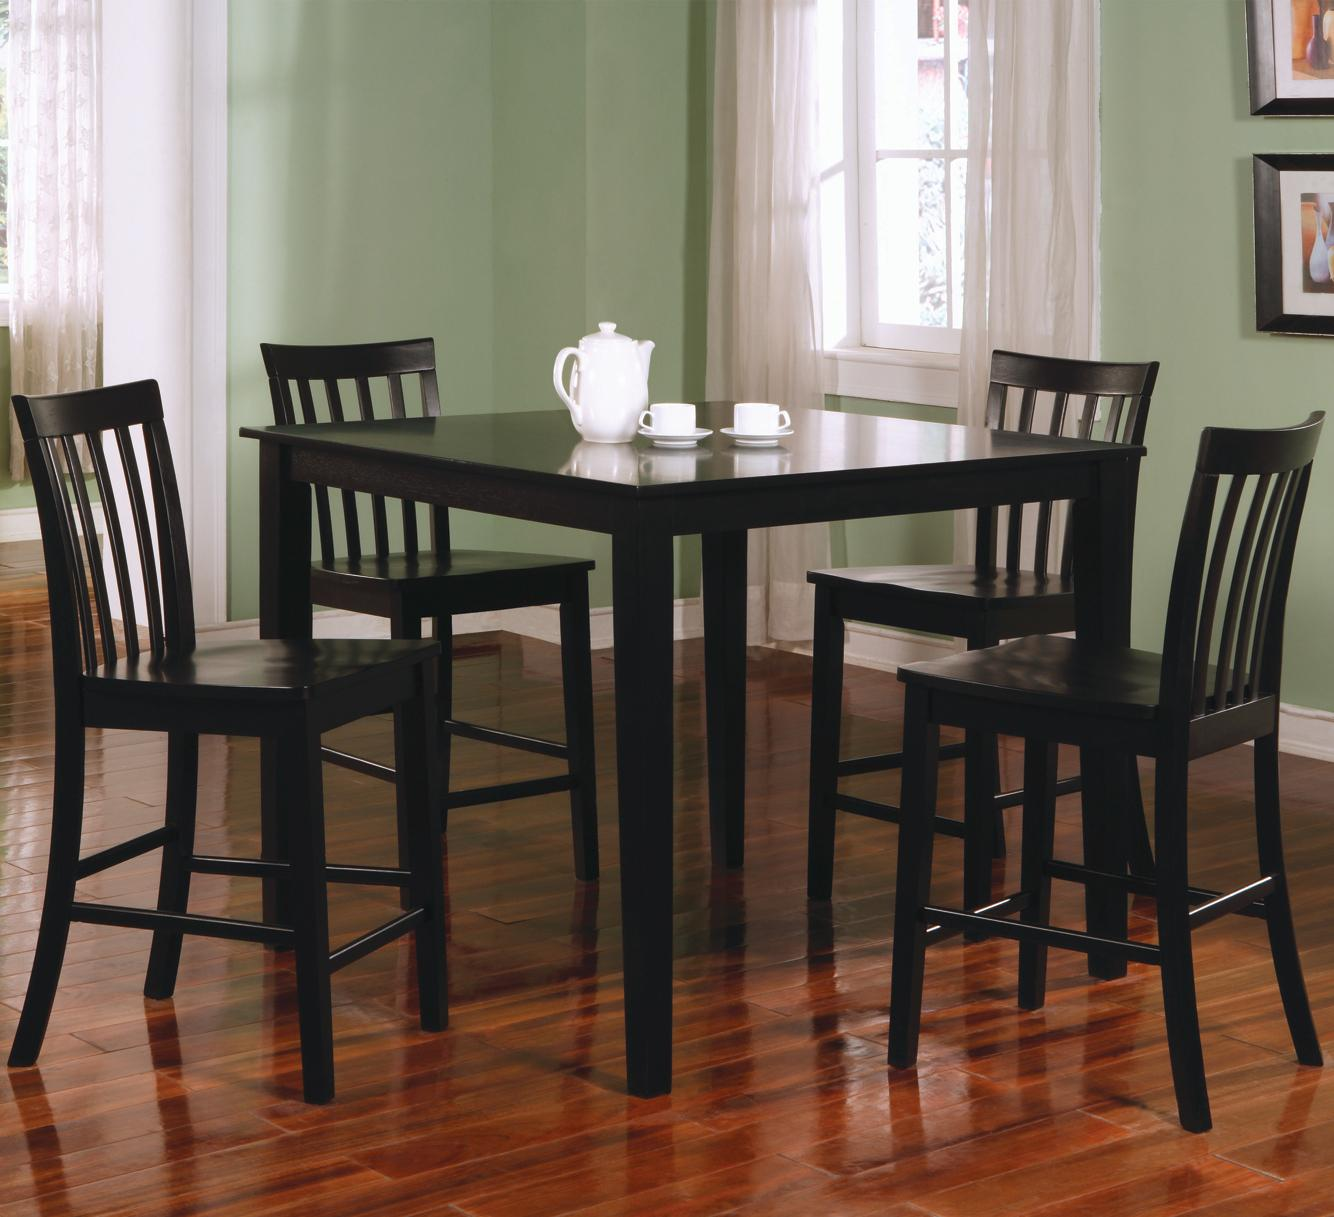 Coaster Ashland 5 Piece Counter Height Dining Set   Item Number: 150231BLK